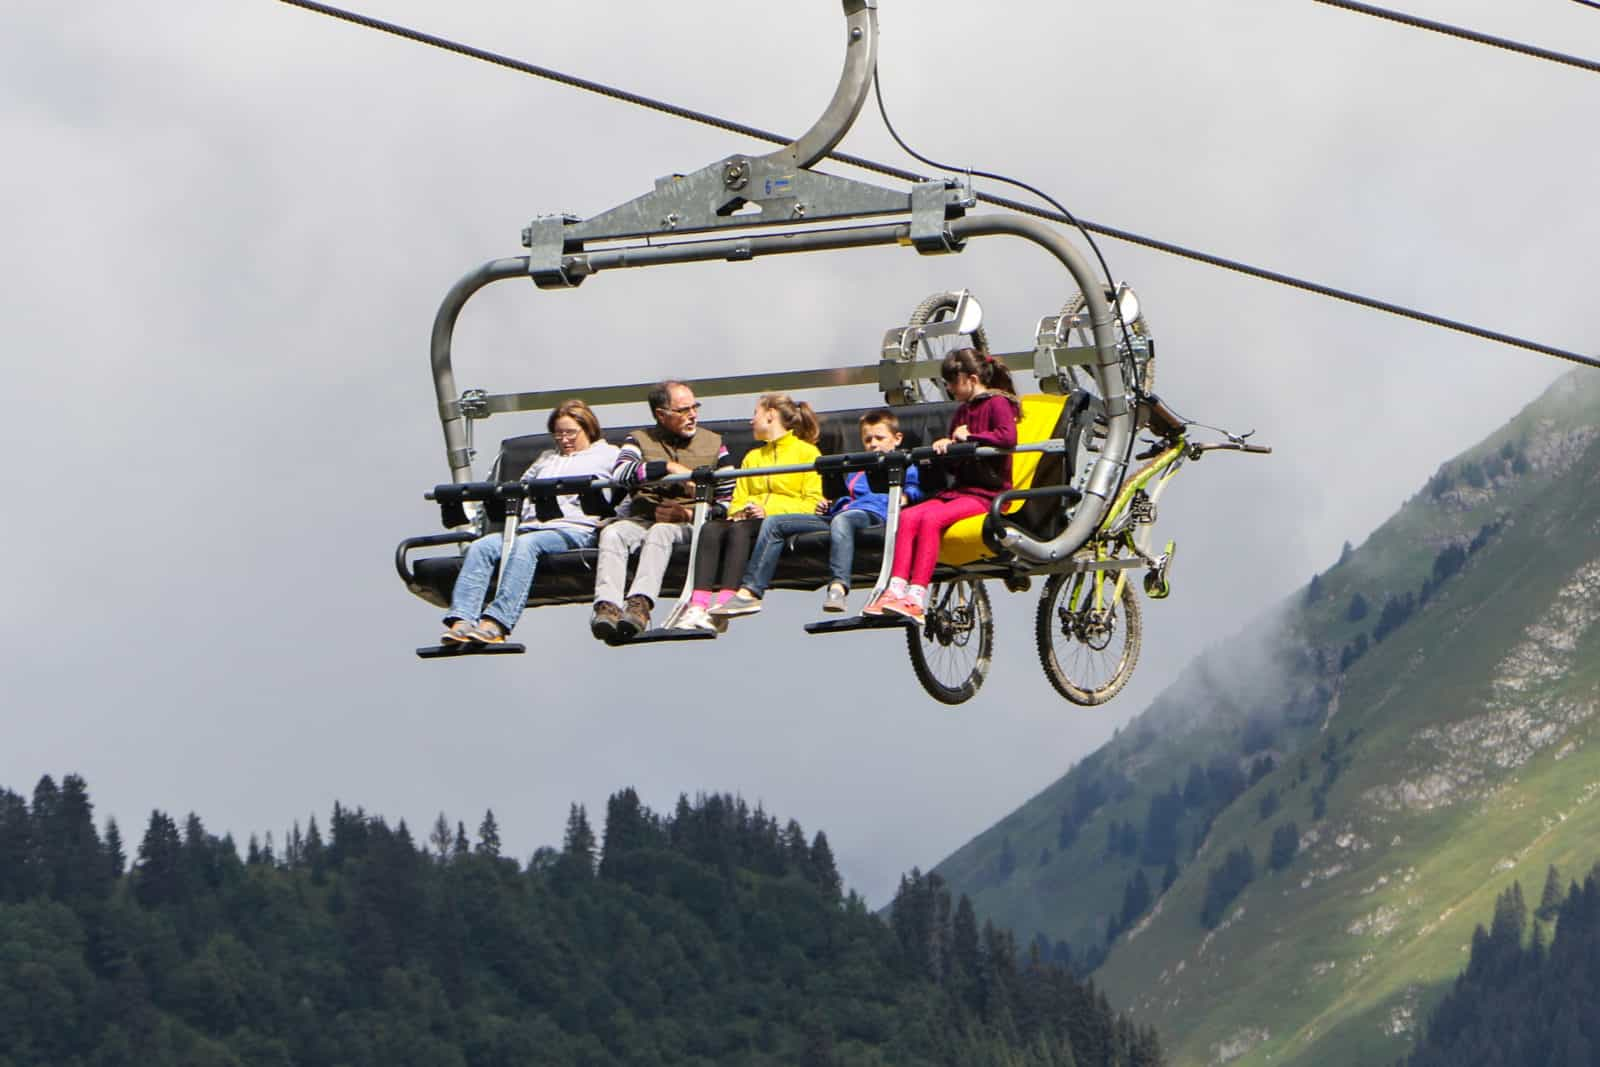 People and mountain bikes on a chairlift